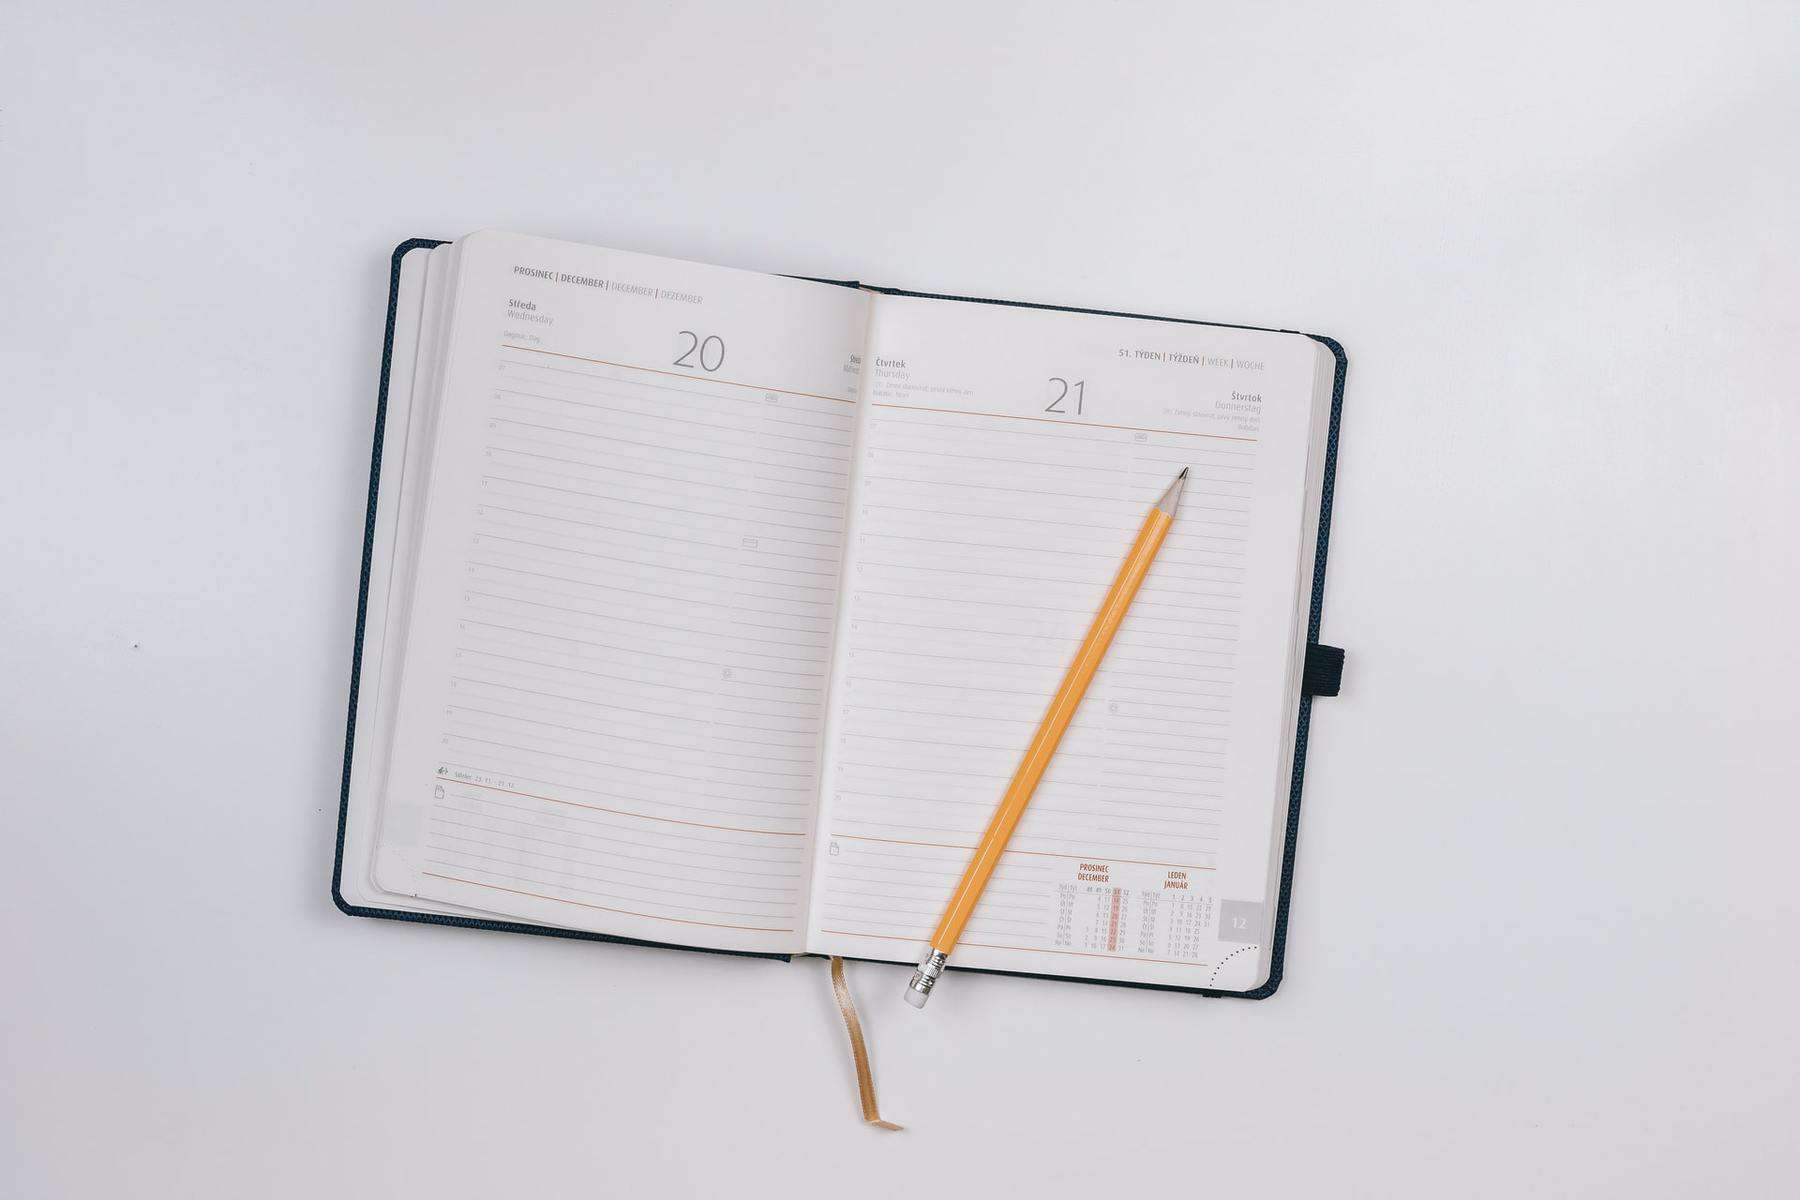 Open planner and pencil